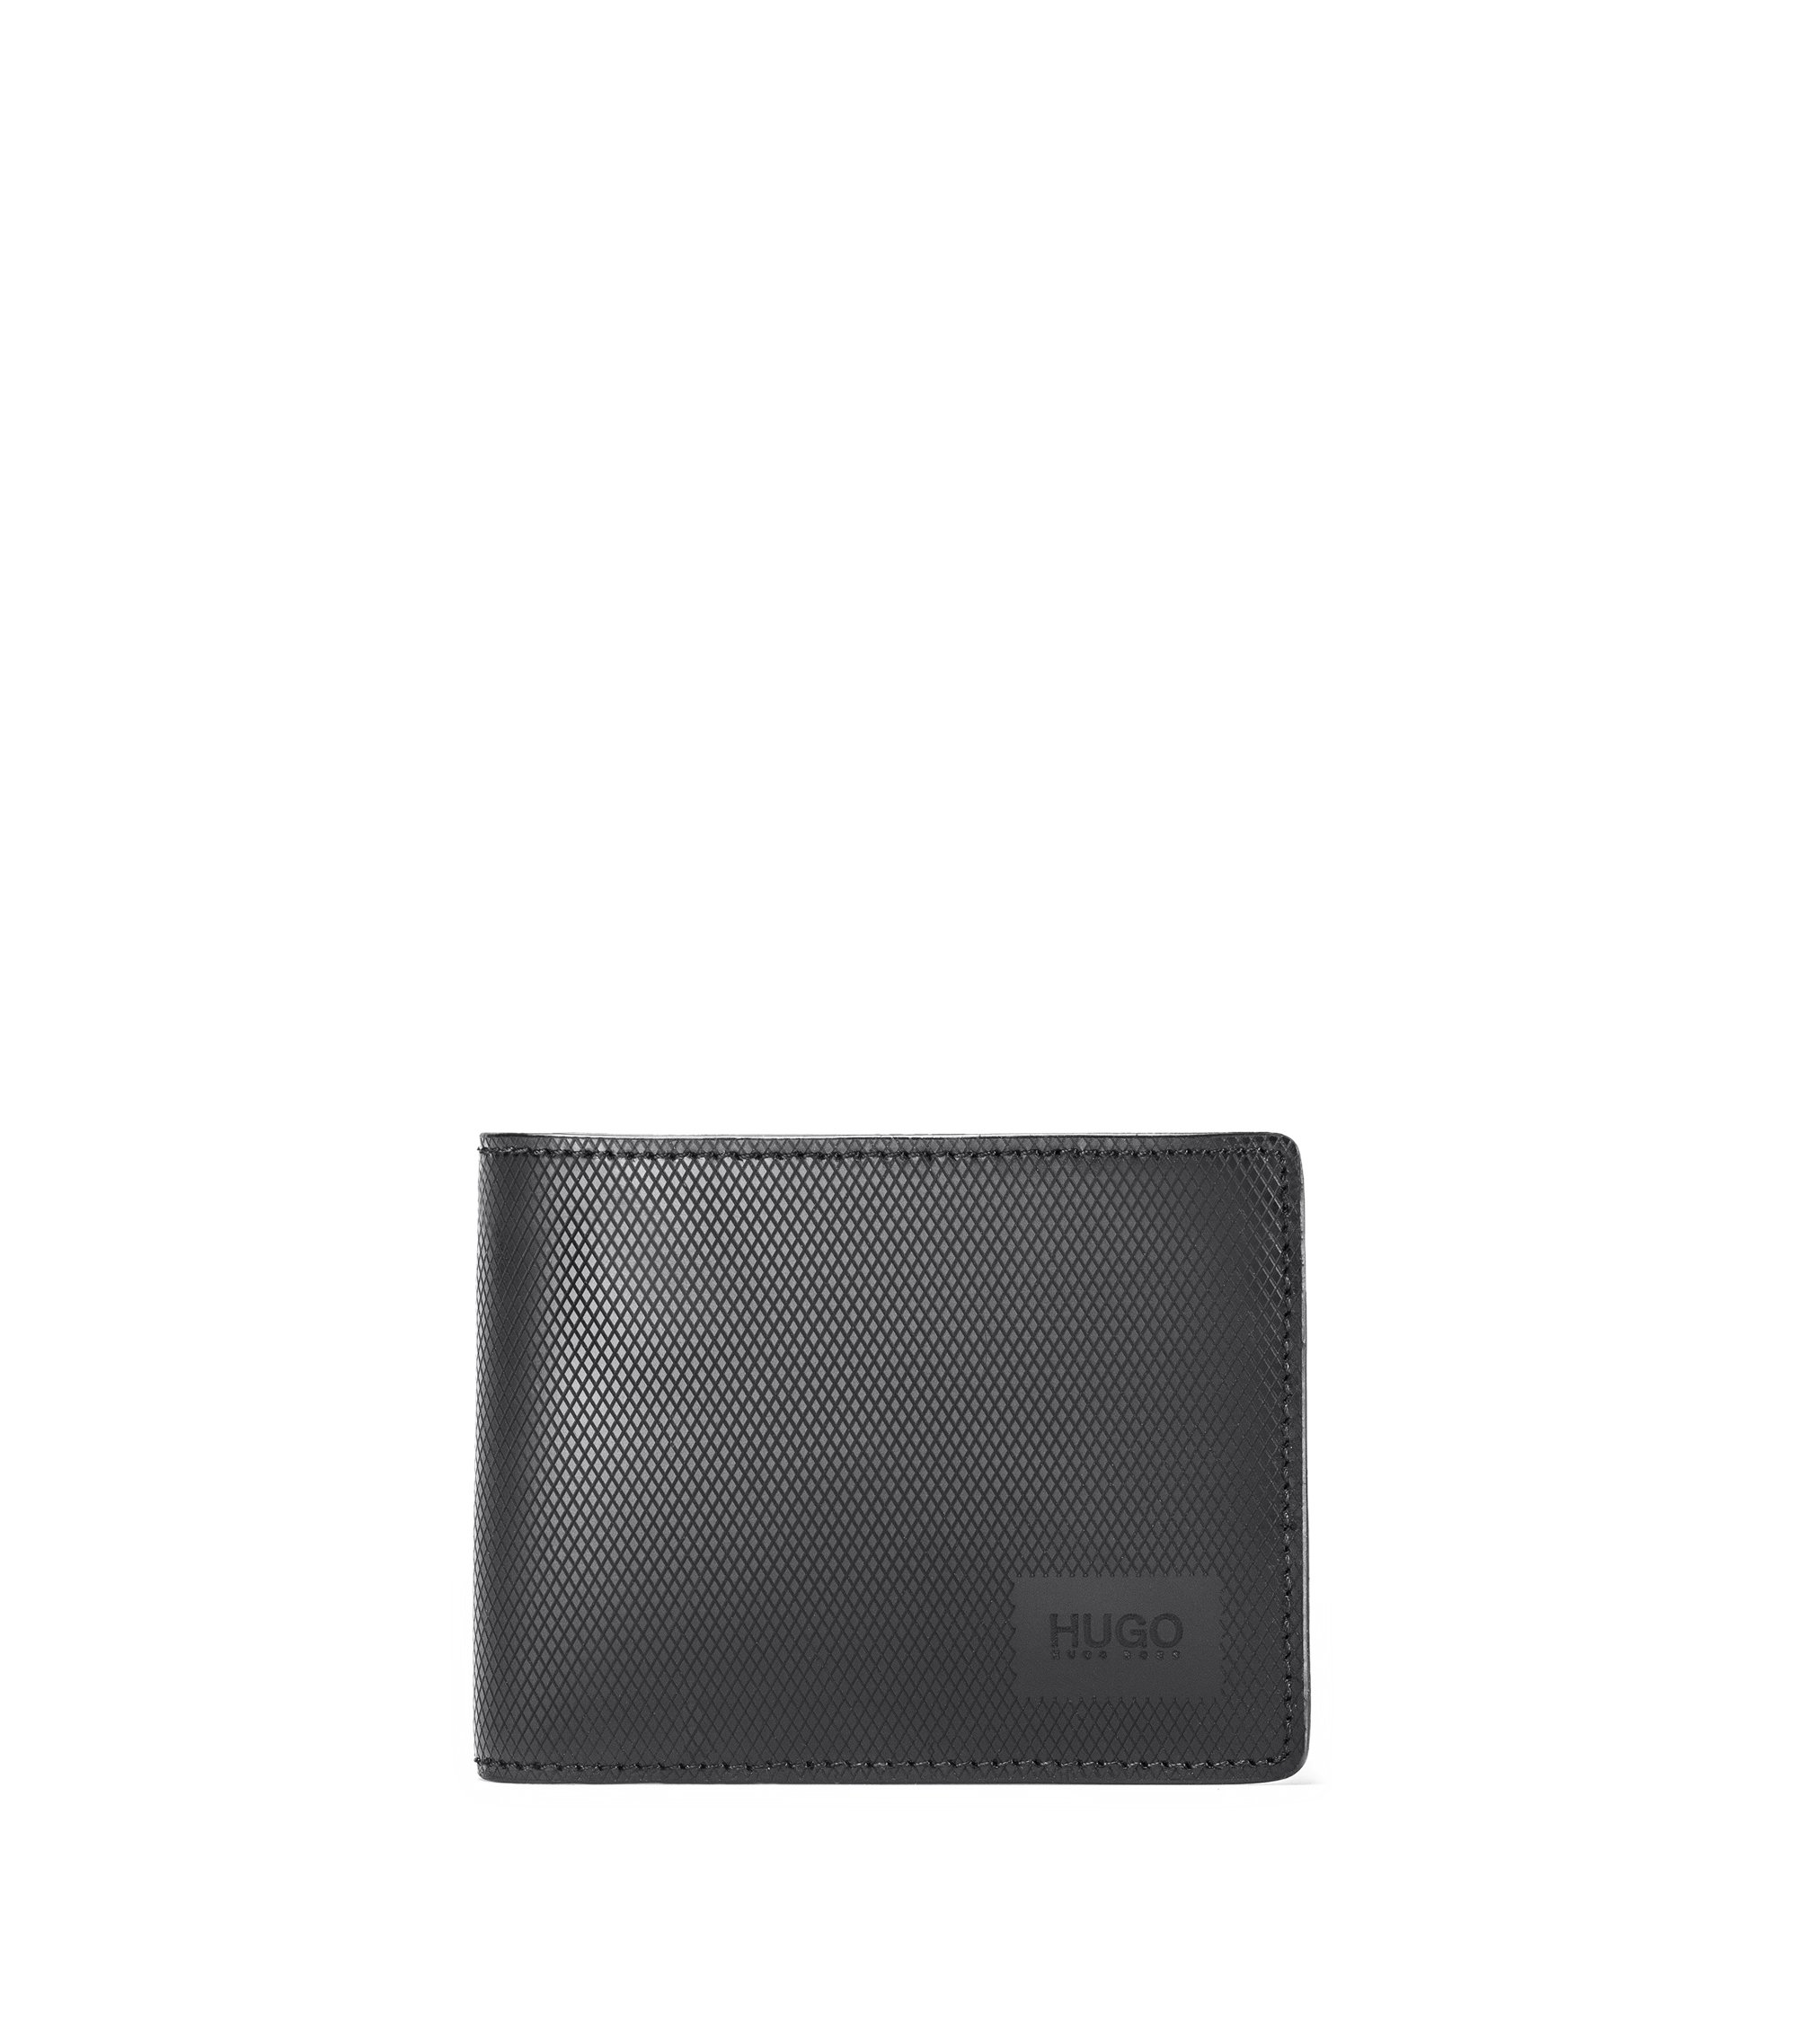 Leather Billfold Wallet | Mercury 6 CC, Black